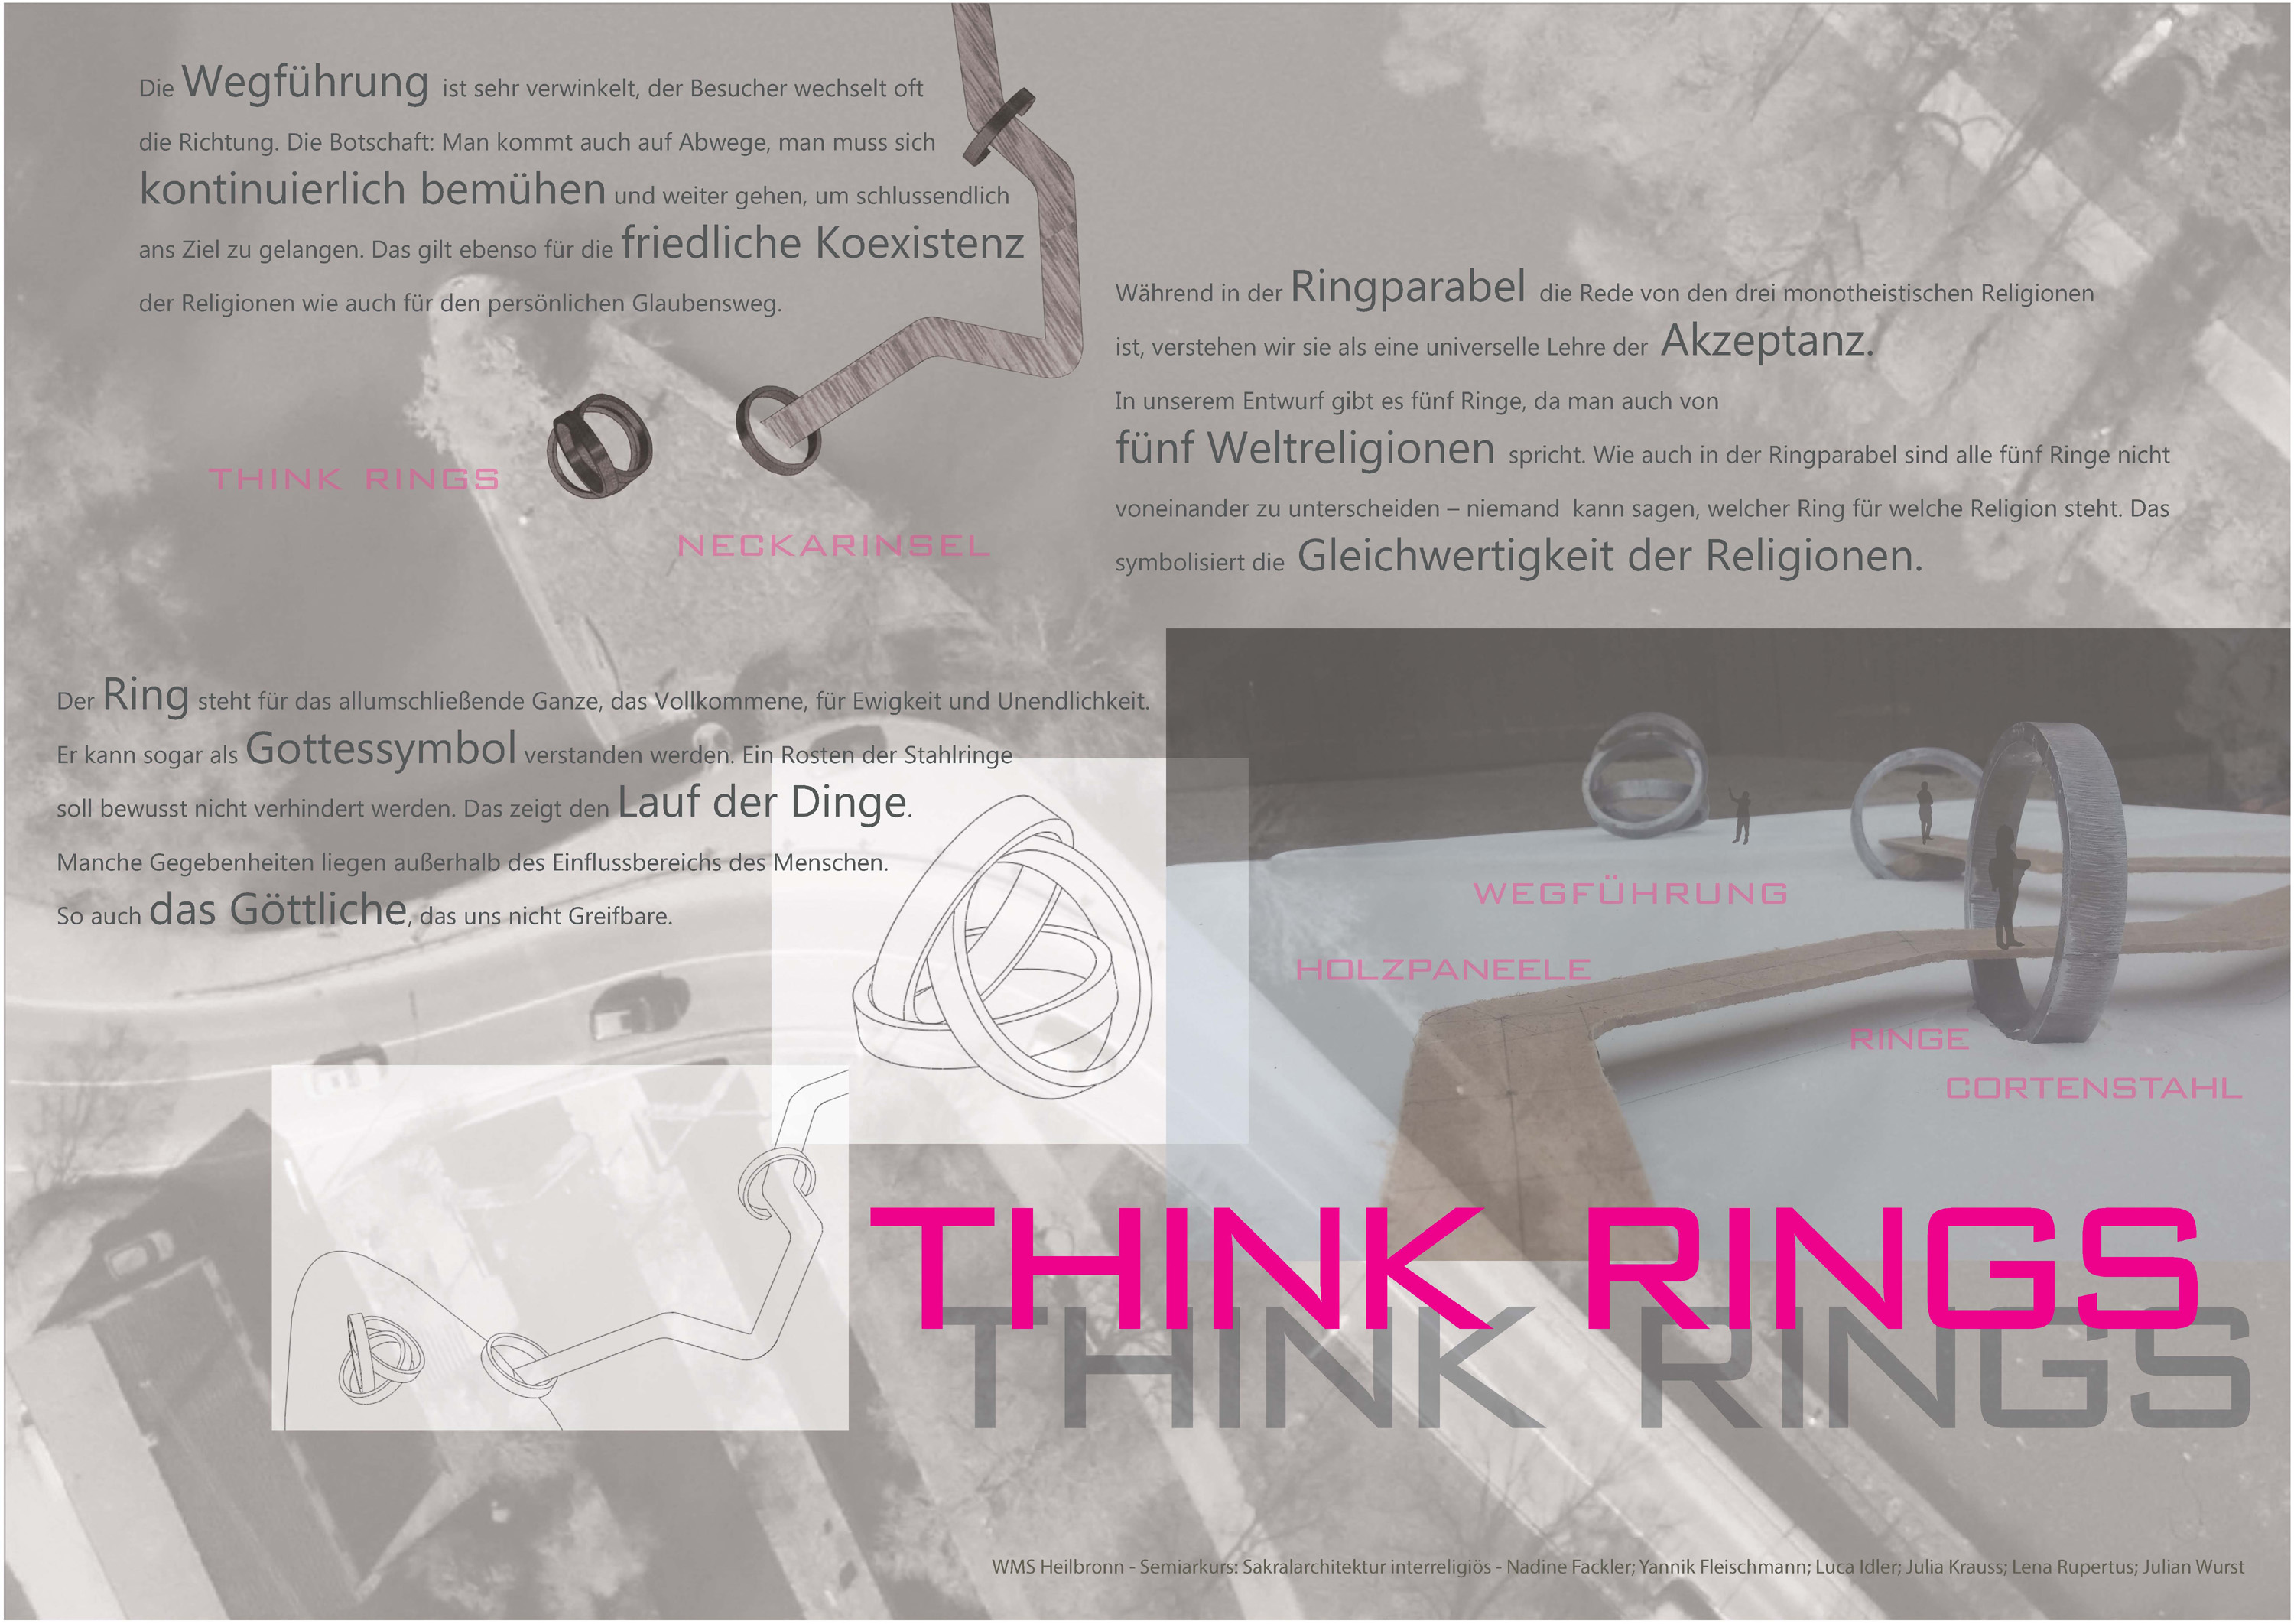 THINK RINGS 2